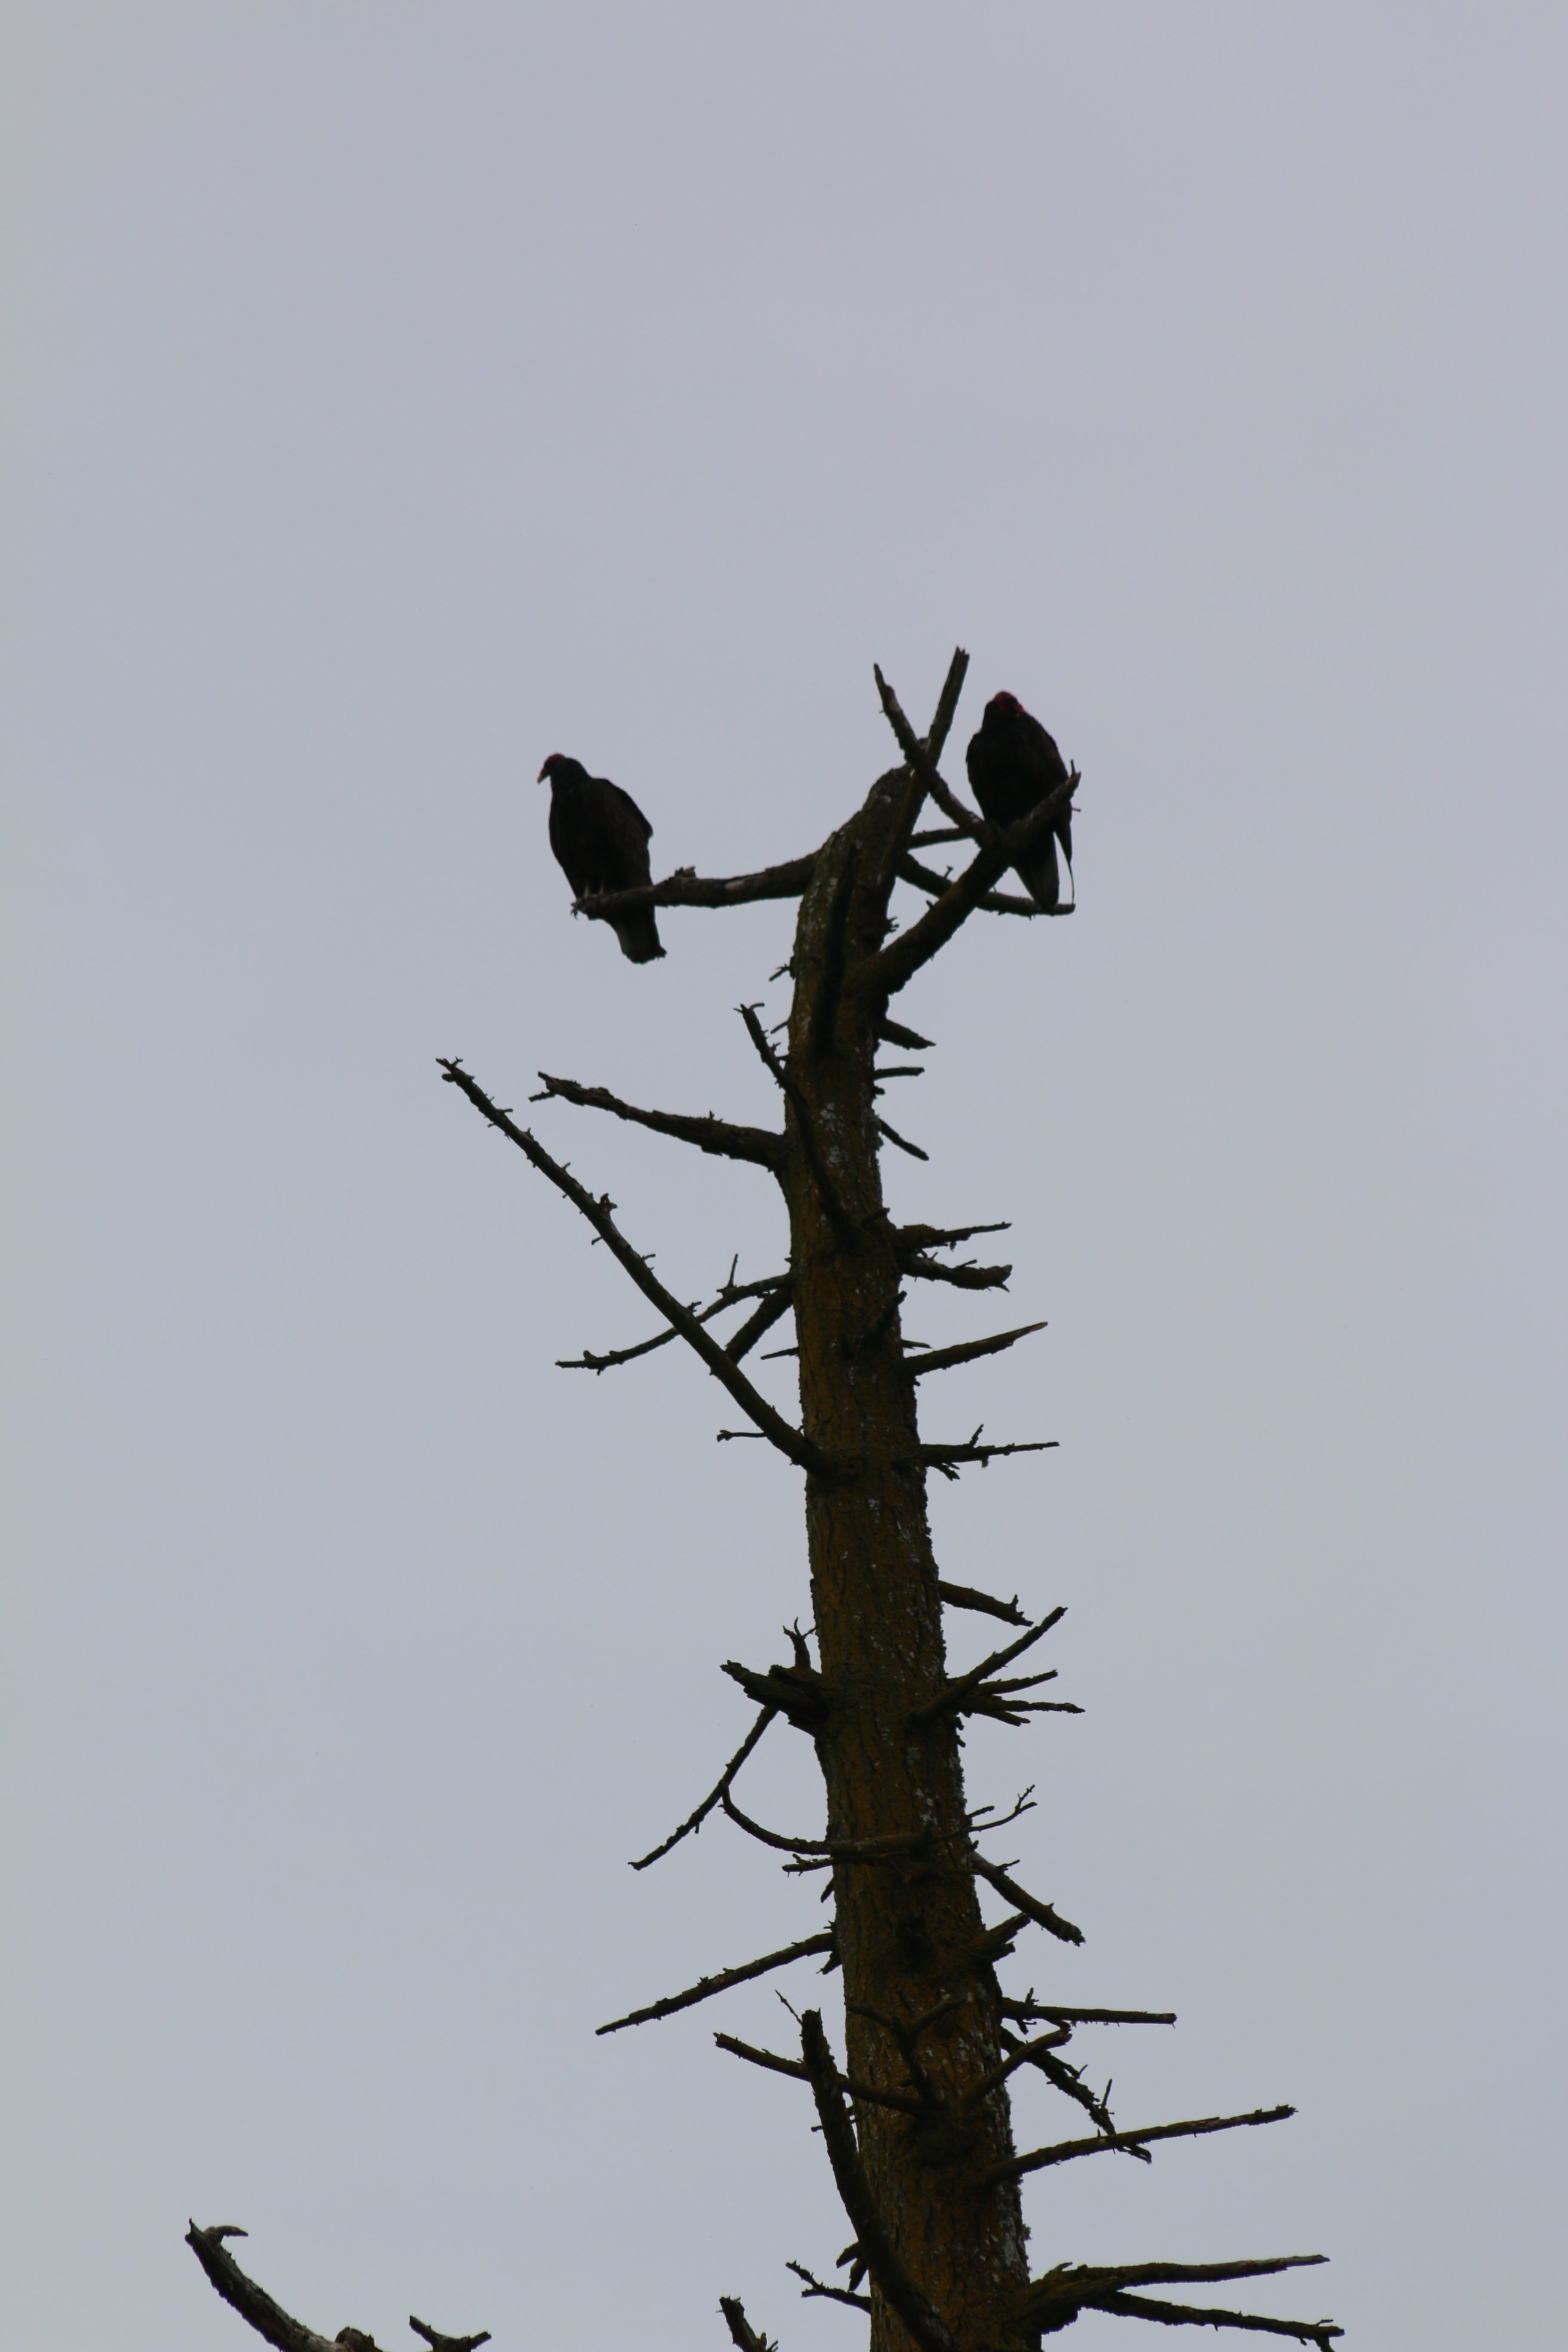 Two vultures perched atop a dead tree